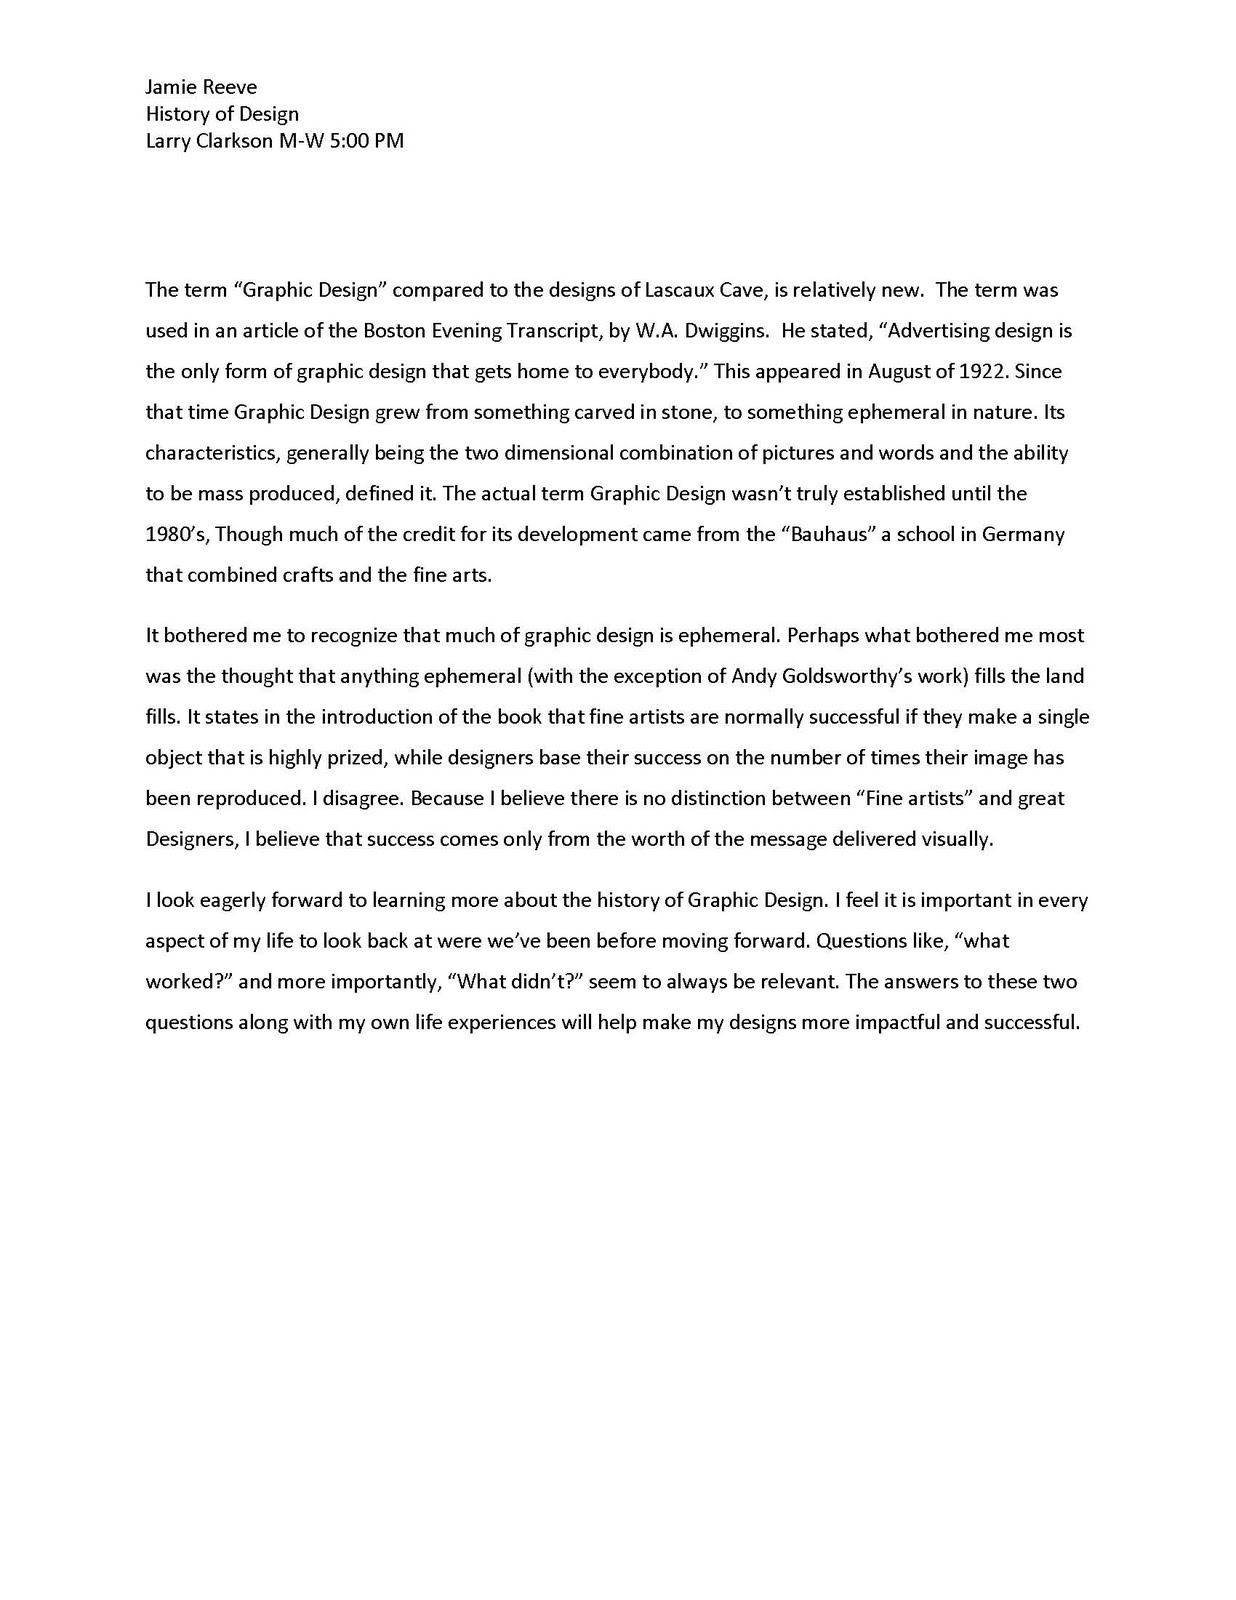 015 Essay Example For Me Essay252b1252bdesign252bhistory Page 2 Phenomenal Titles Social Media Medical Assistant Medicine Full